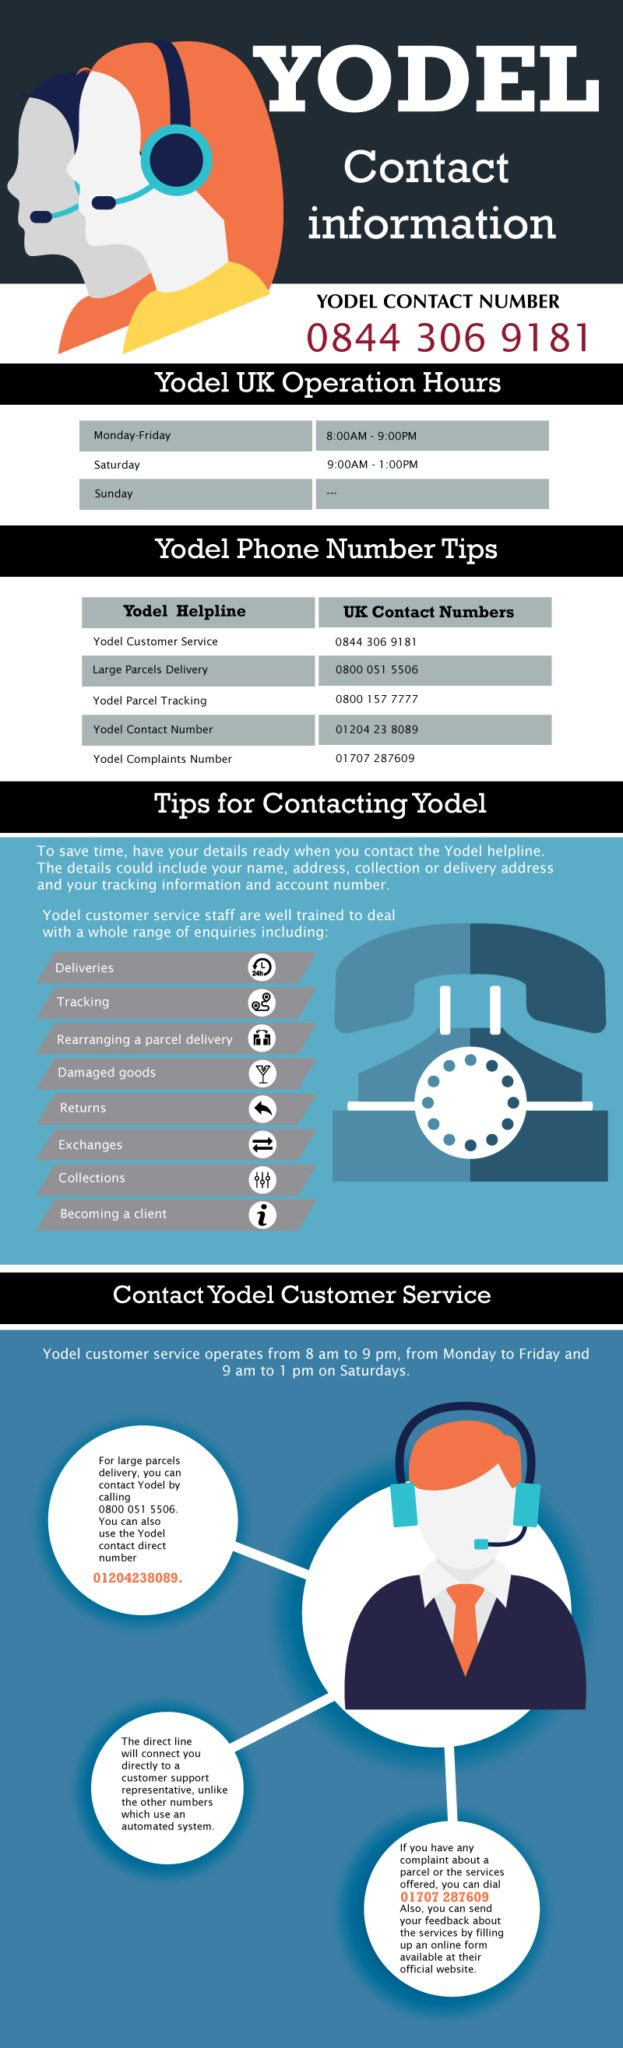 YODEL Contact Number